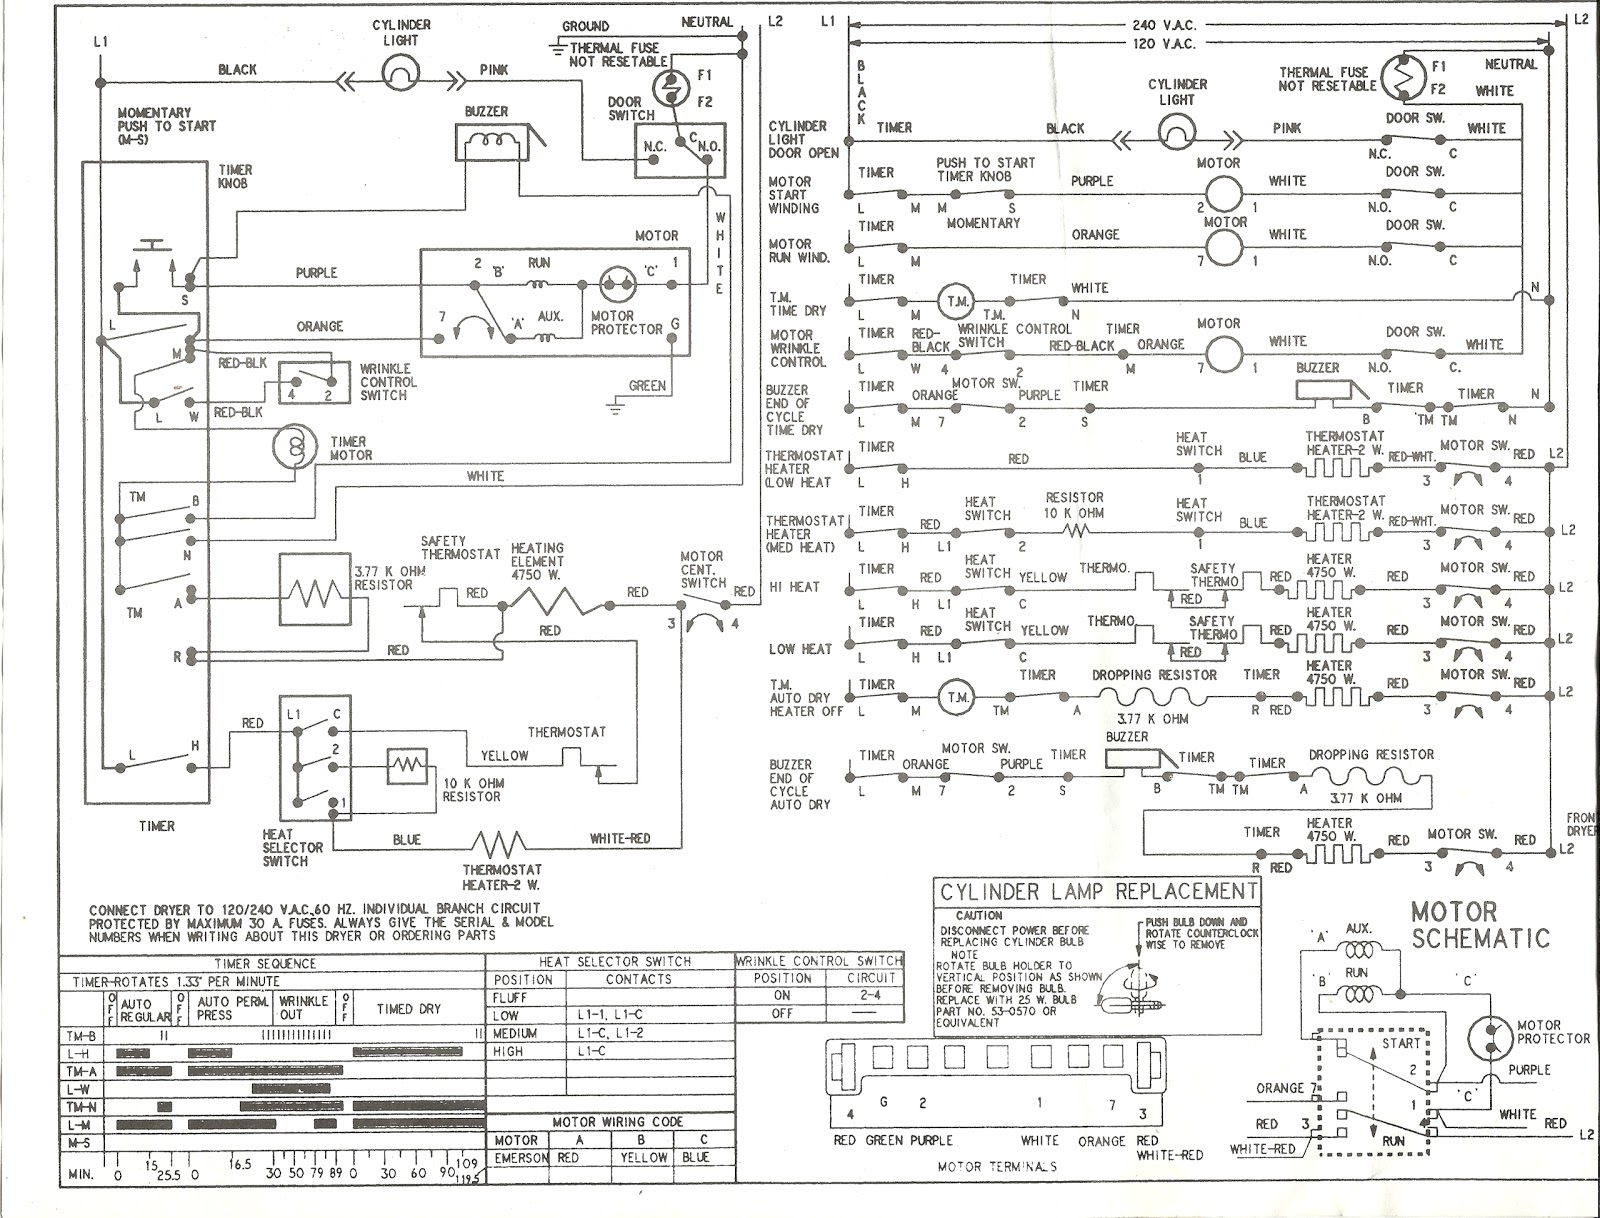 kenmore washer wiring diagram on wiring diagram parts wiring for kenmore 80 series washer parts diagram wiring diagram for whirlpool washer on wiring download wirning  at cos-gaming.co